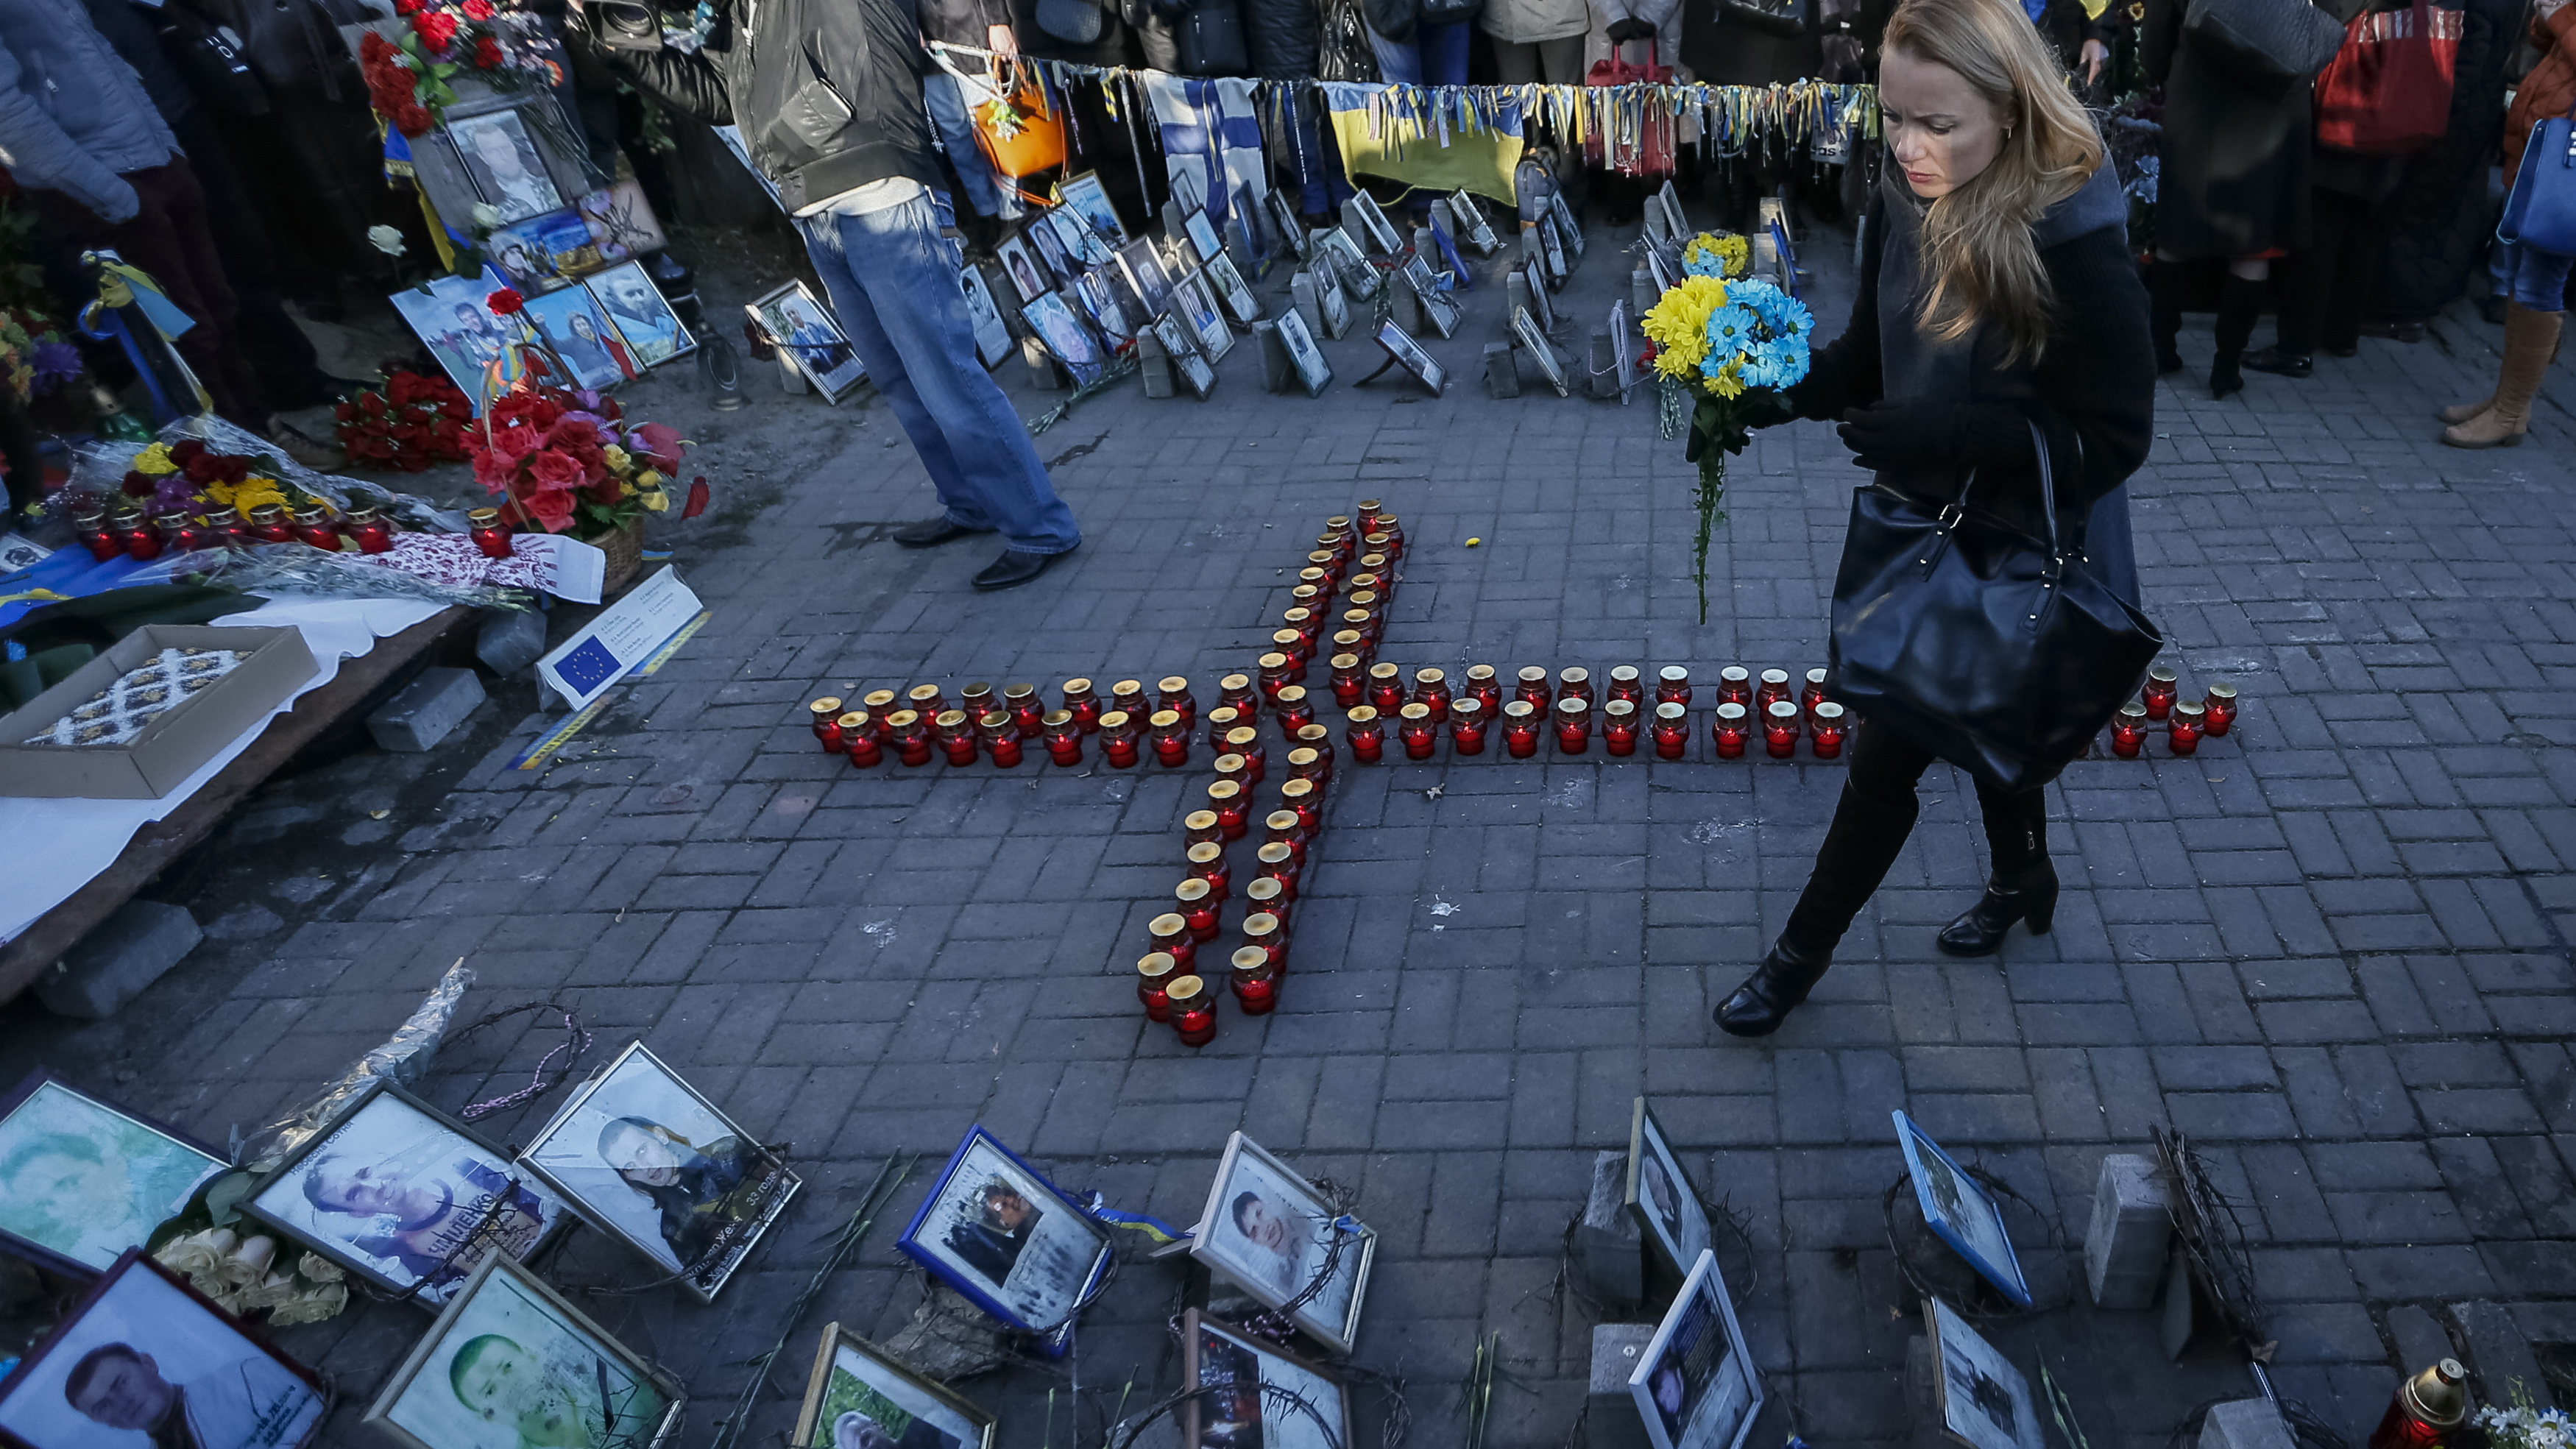 A woman walks near a memorial to those who died protesting against President Yanukovych, during a commemoration ceremony for them in Kiev Friday, as Ukrainians marked the first anniversary of protests which led to the revolution.